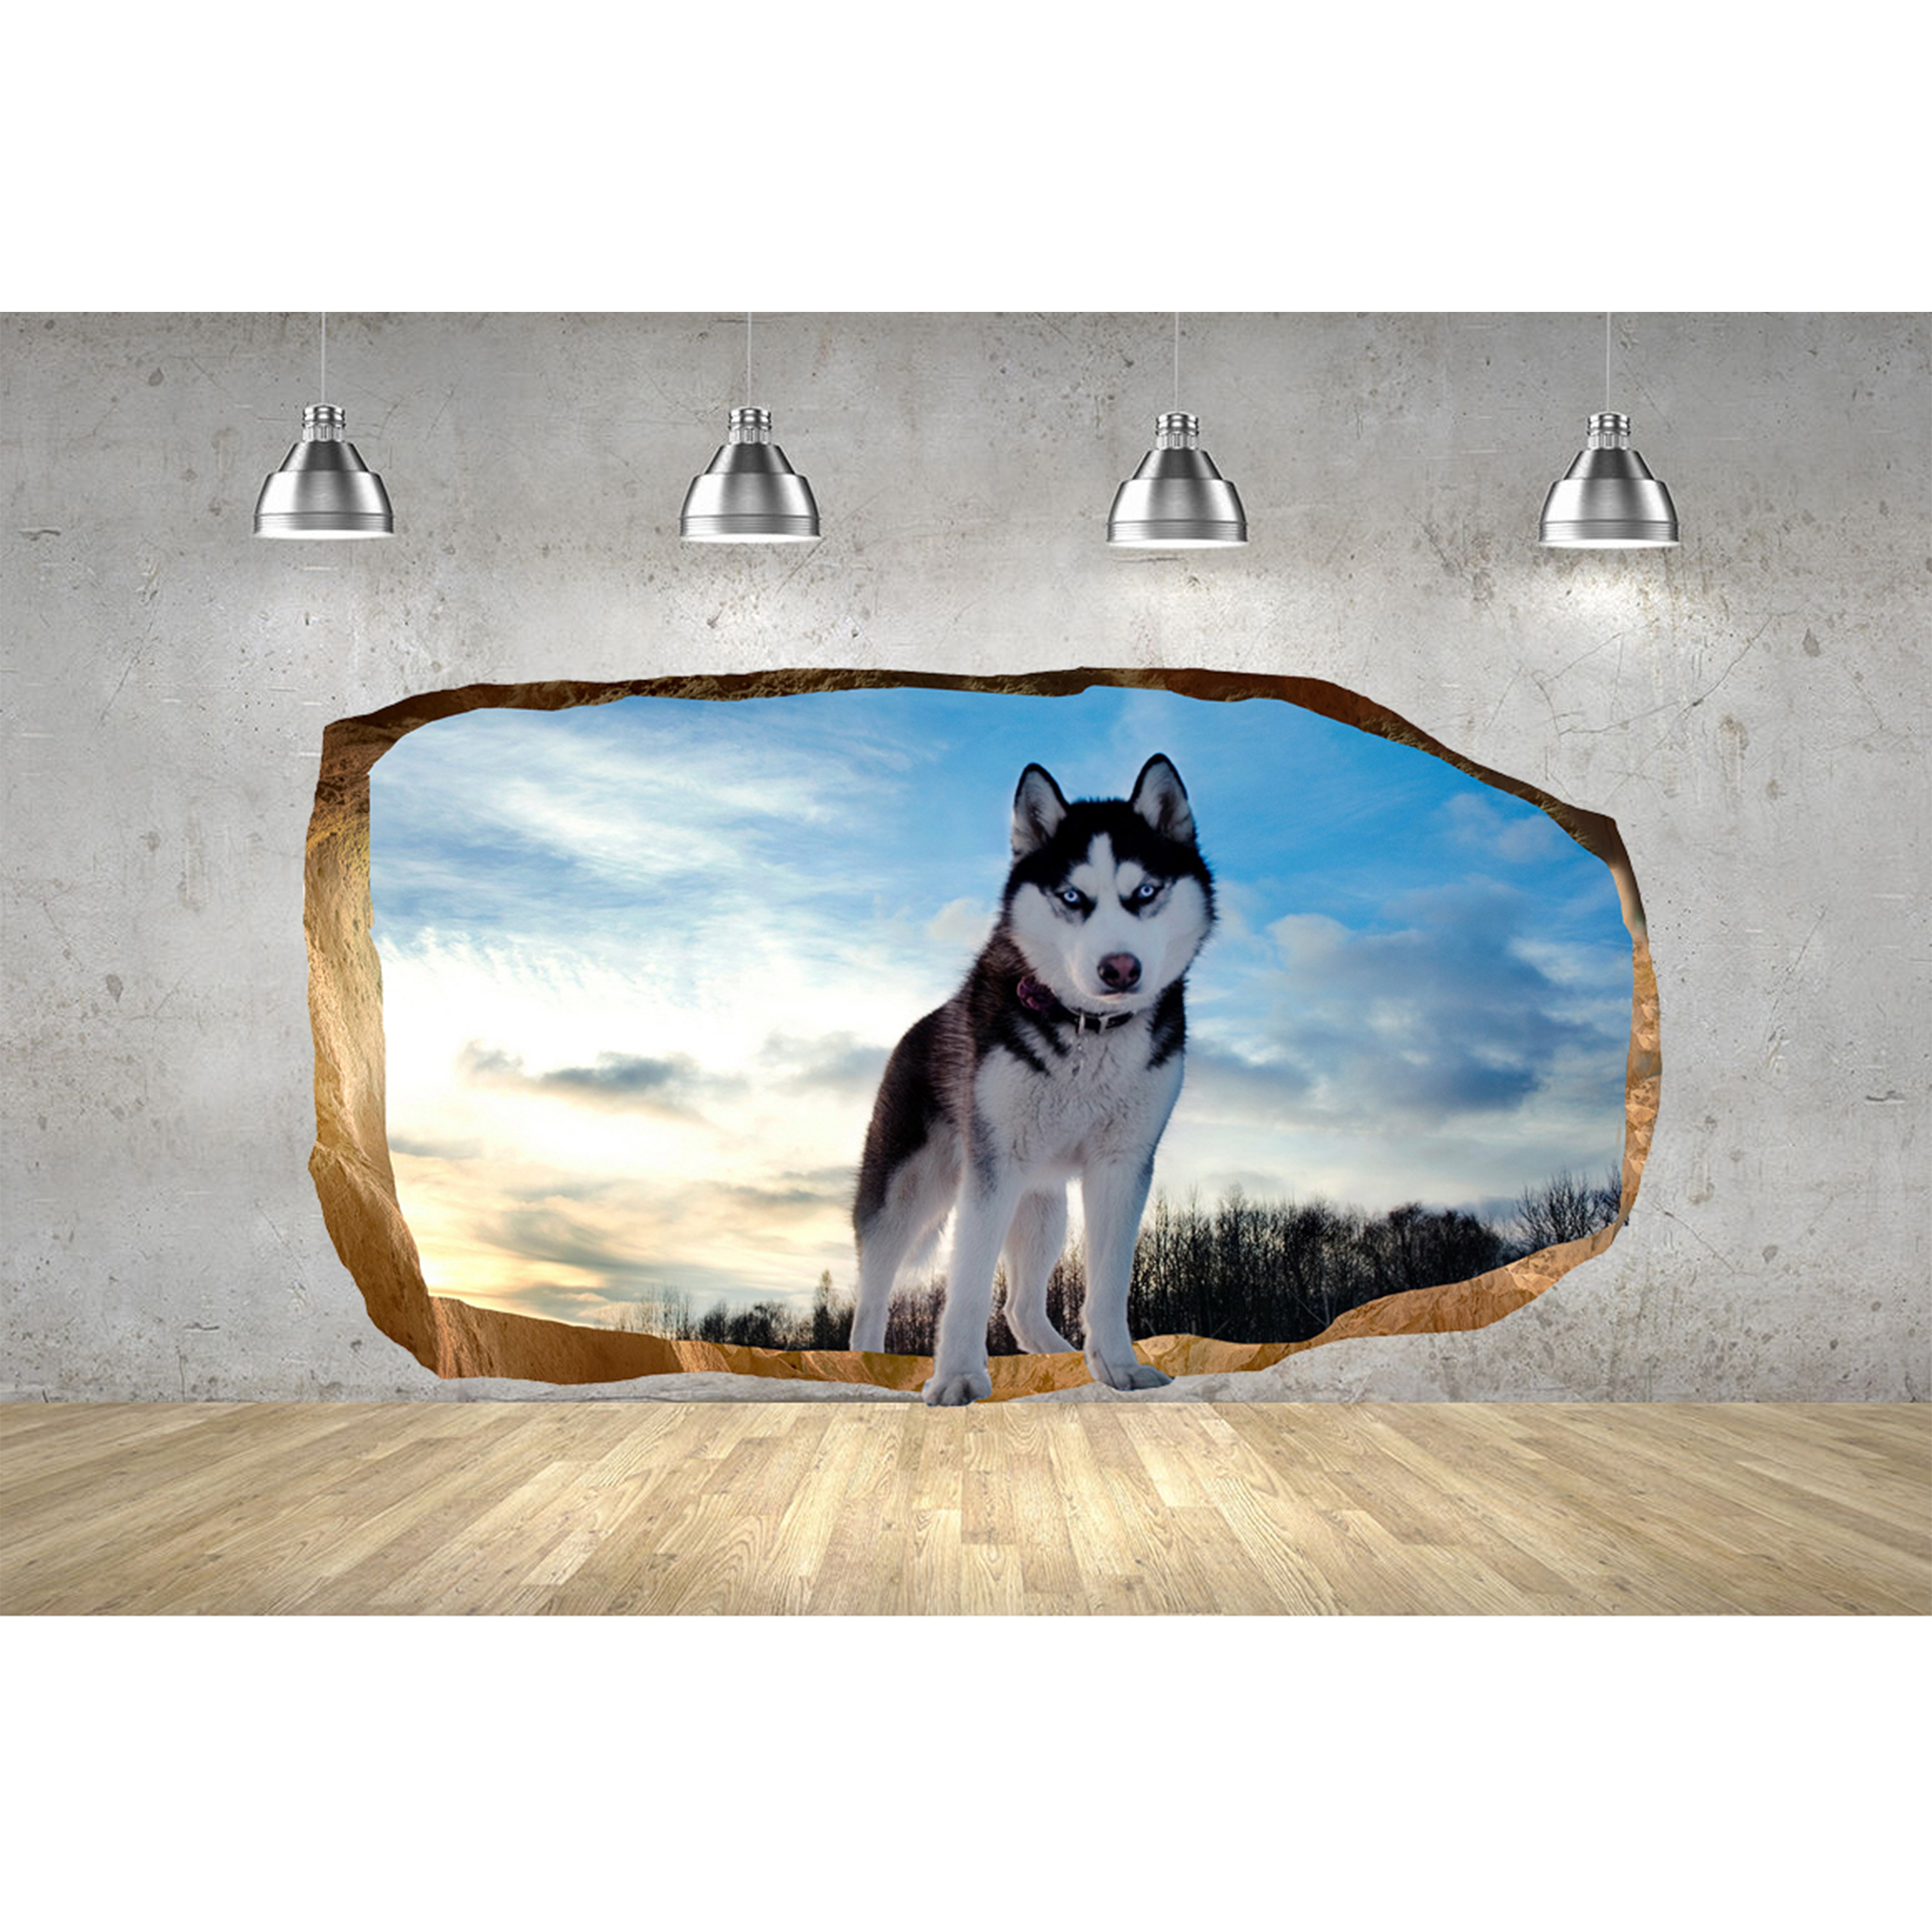 Startonight 3D Mural Wall Art Photo Decor Beautiful Dog Amazing Dual View Surprise Wall Mural Wallpaper for Bedroom Animals Wall Paper Art Gift Large 47.24 '' By 86.61 ''